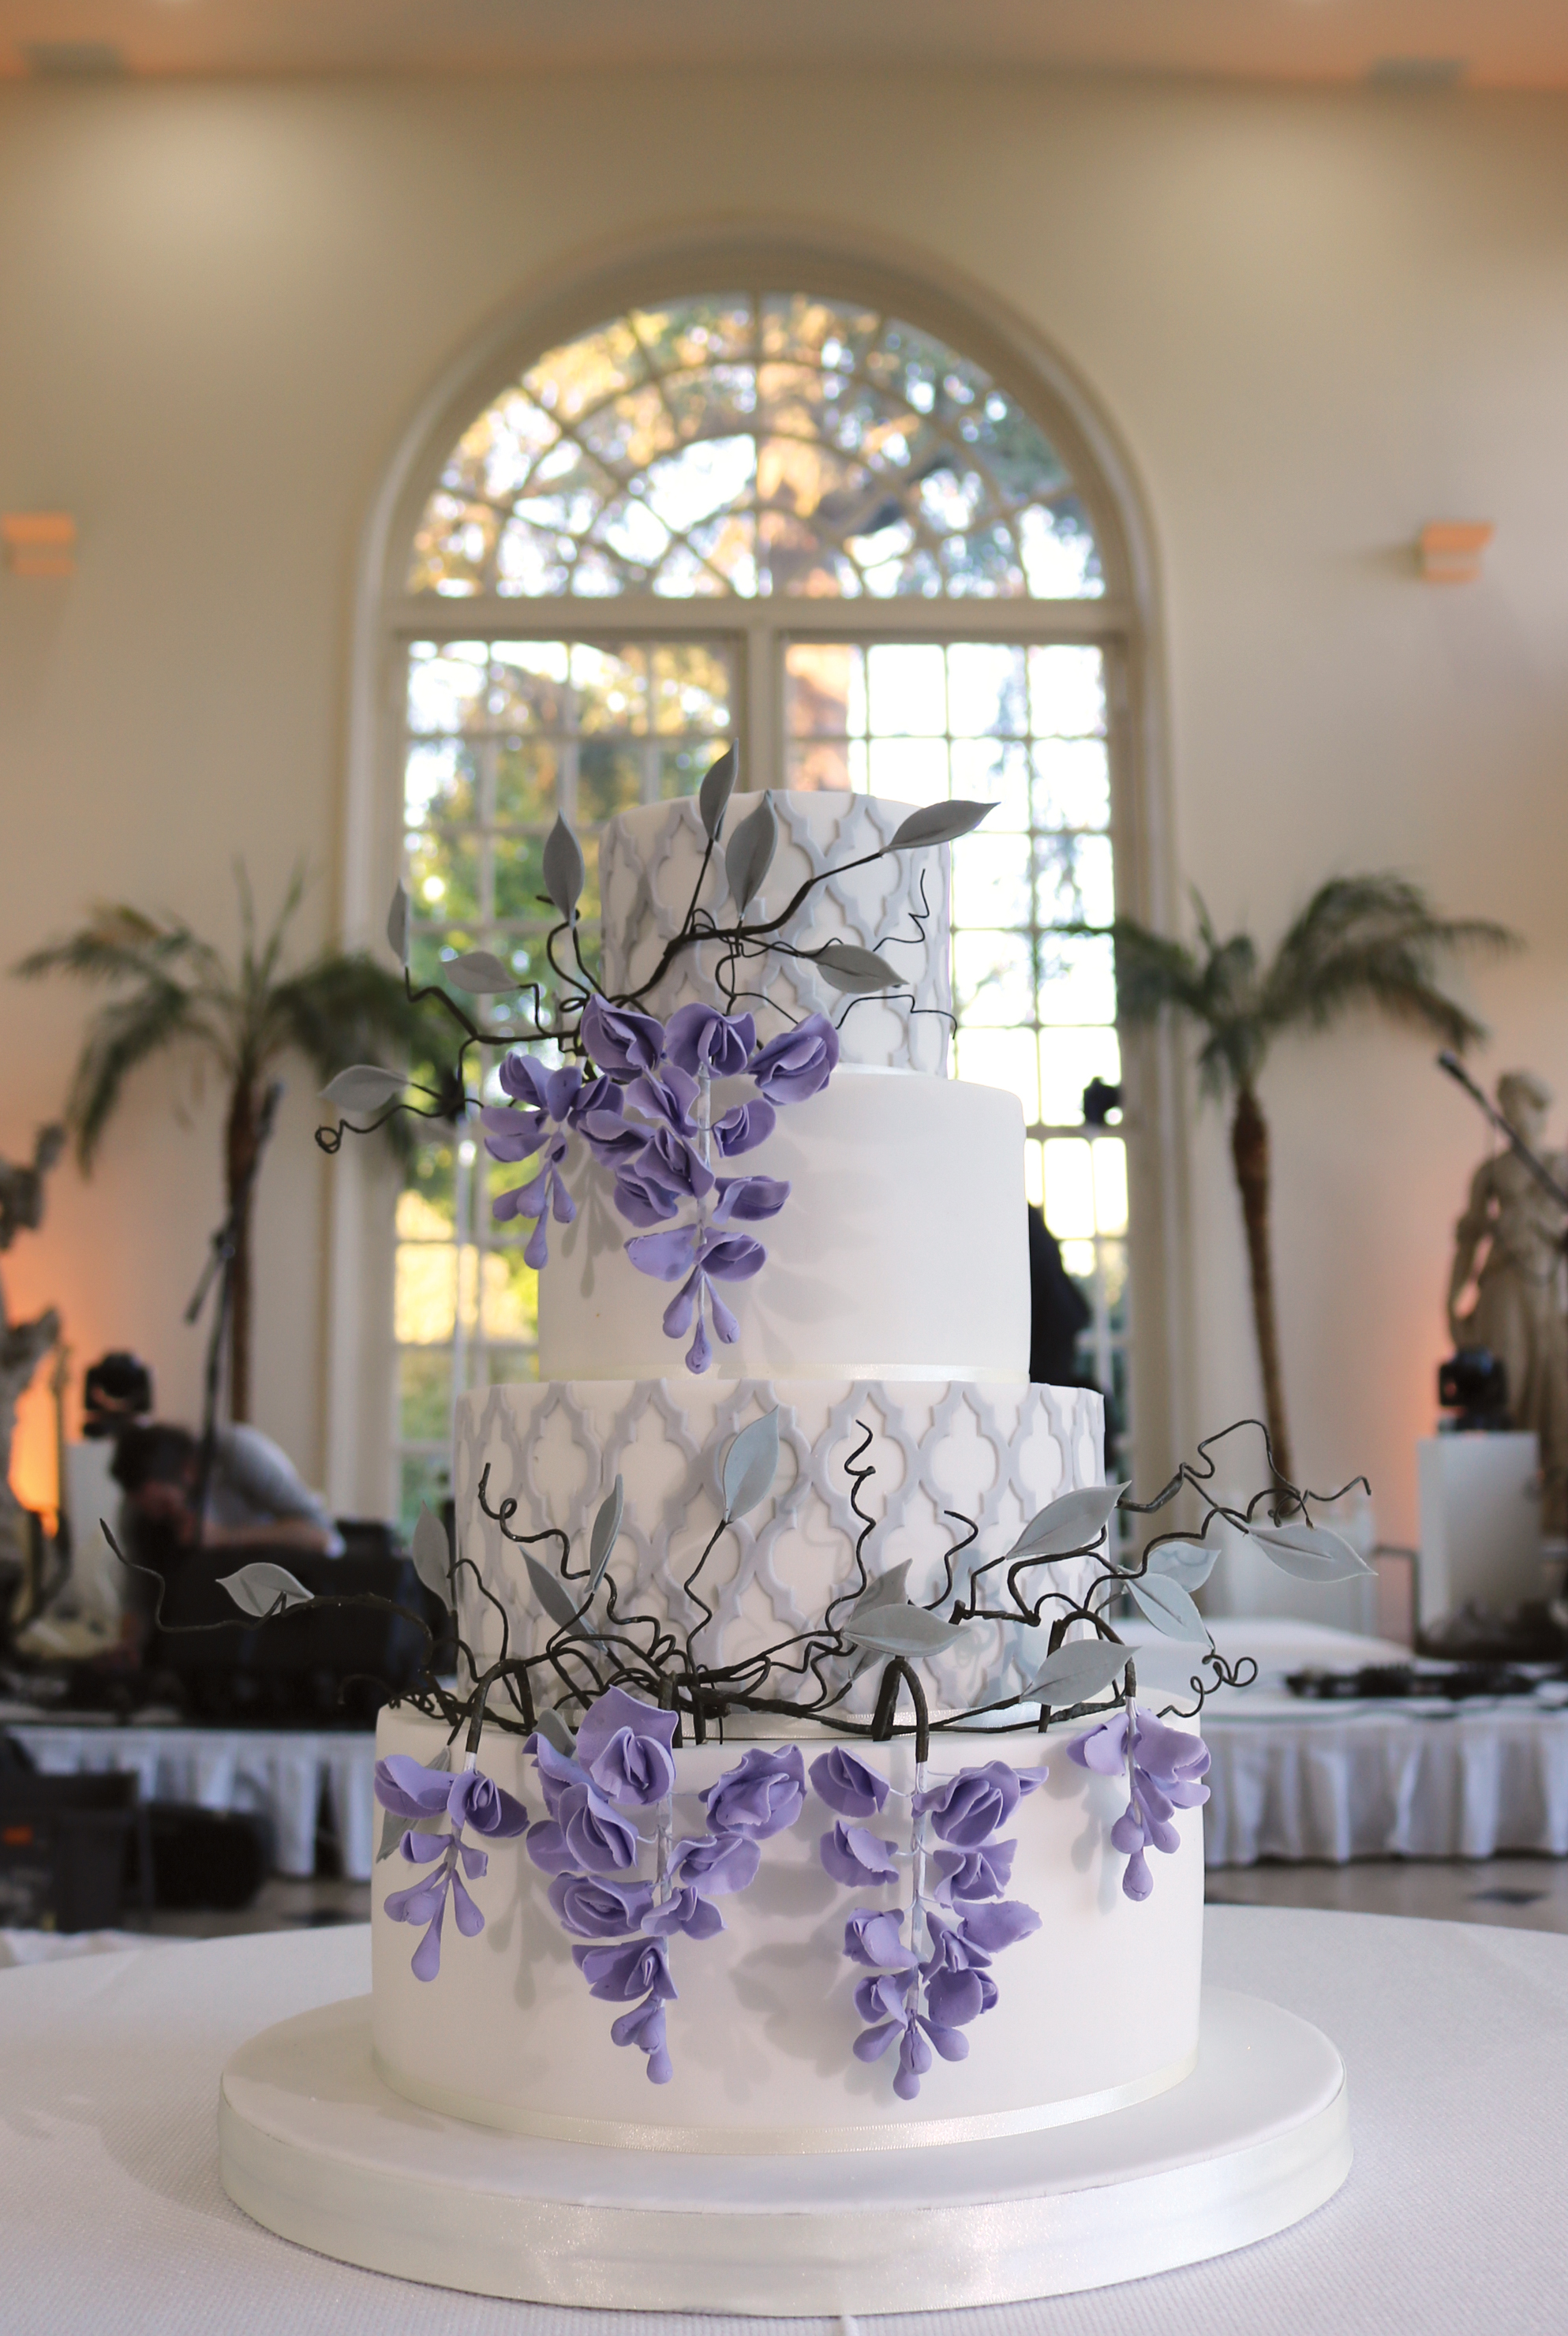 Wisteria winding around this wedding cake with grey lattice work, in position in the Orangery at Kew Gardens in West London.